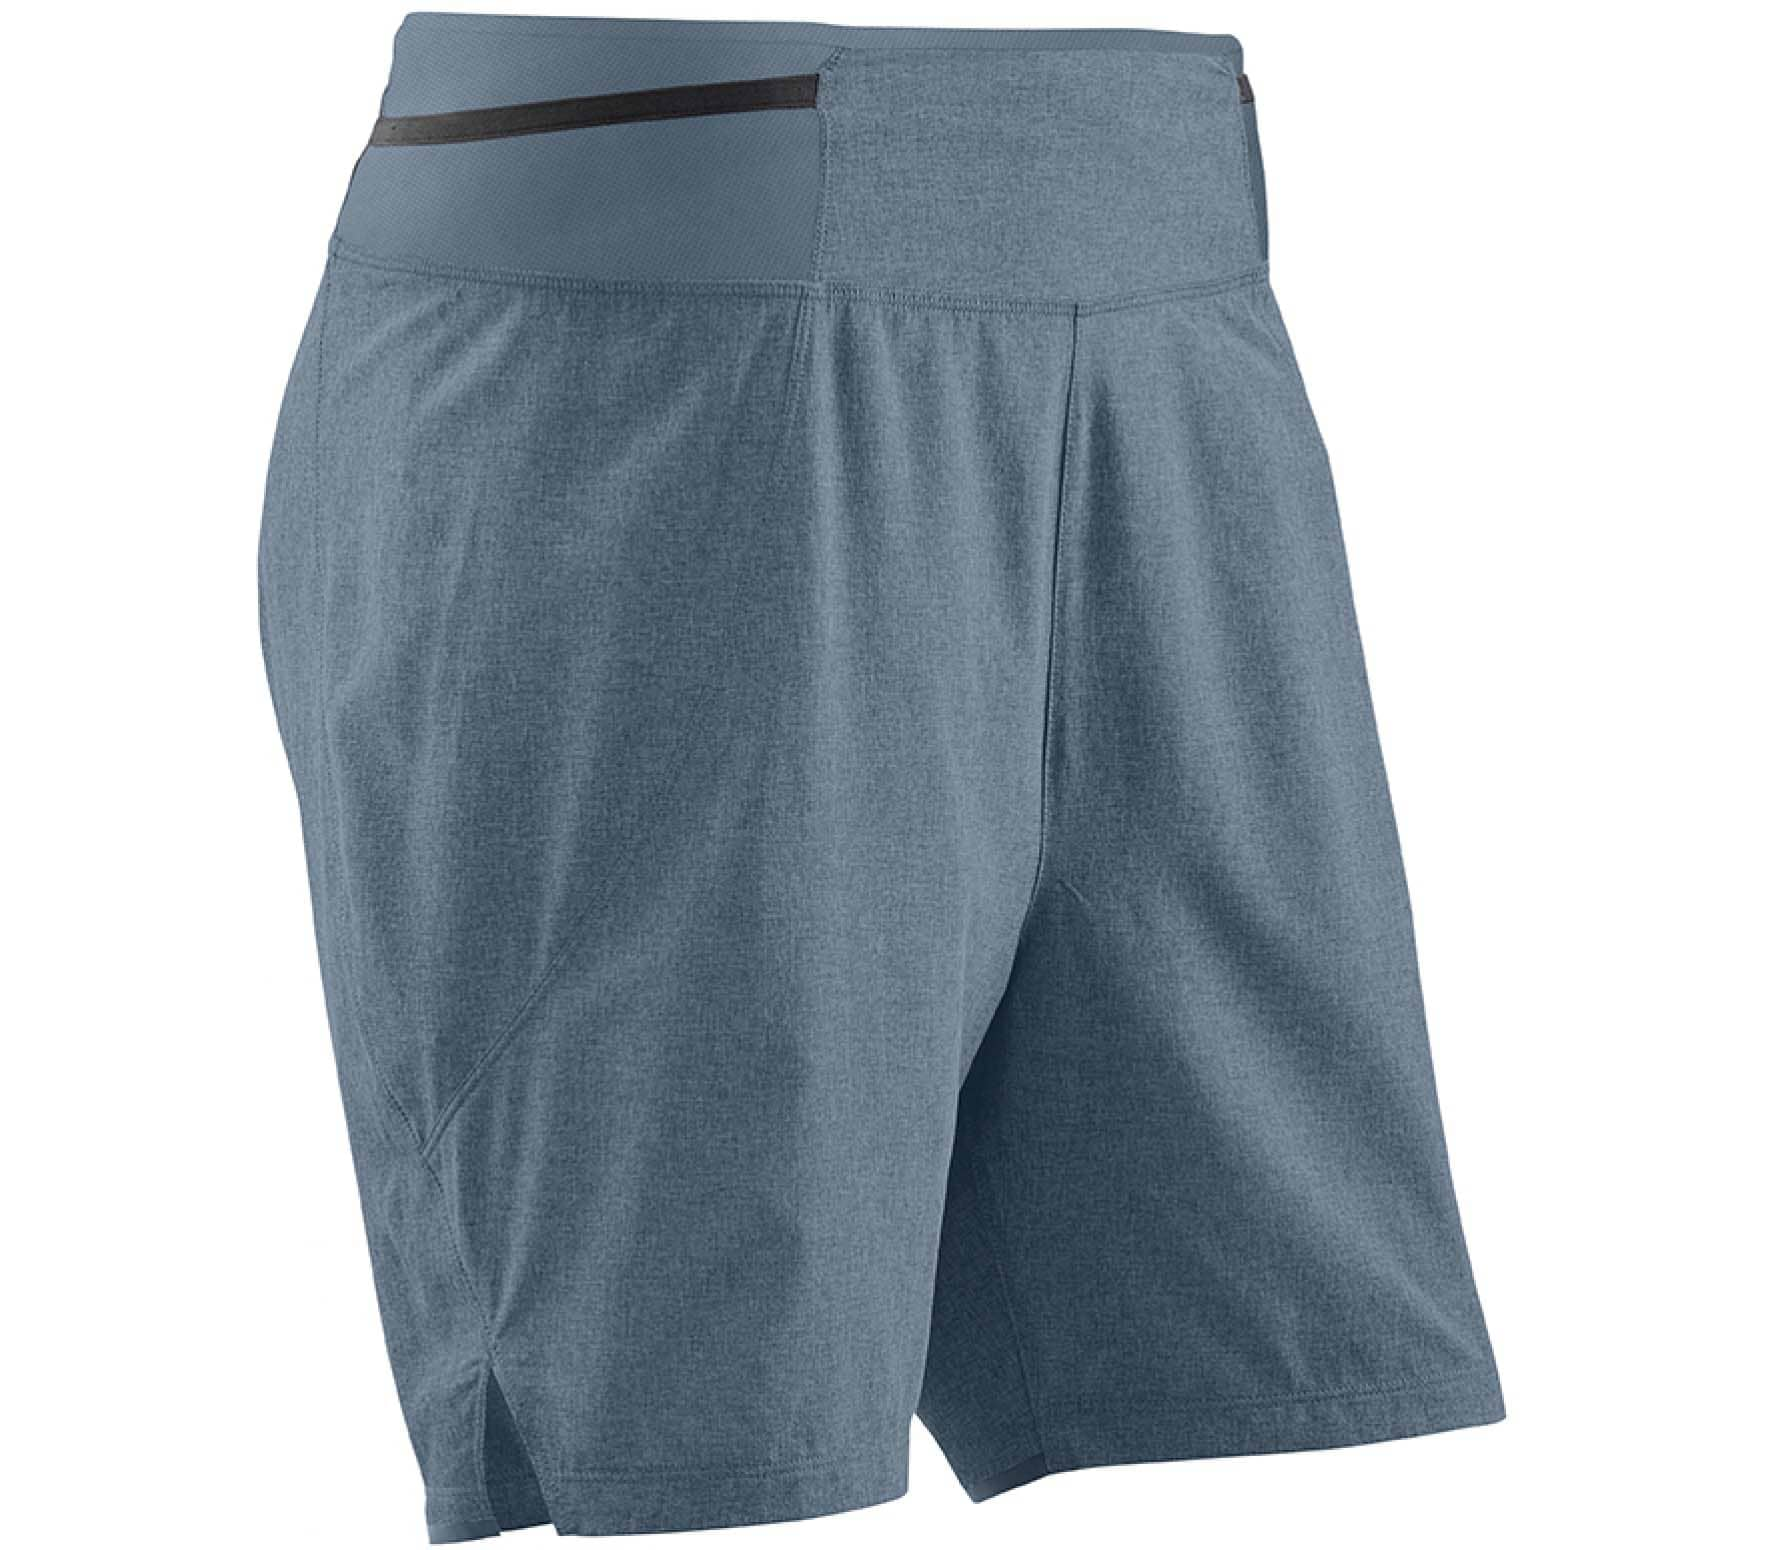 ee0b08115ababa CEP Loose Fit Men Running Shorts grey - buy it at the Keller Sports ...